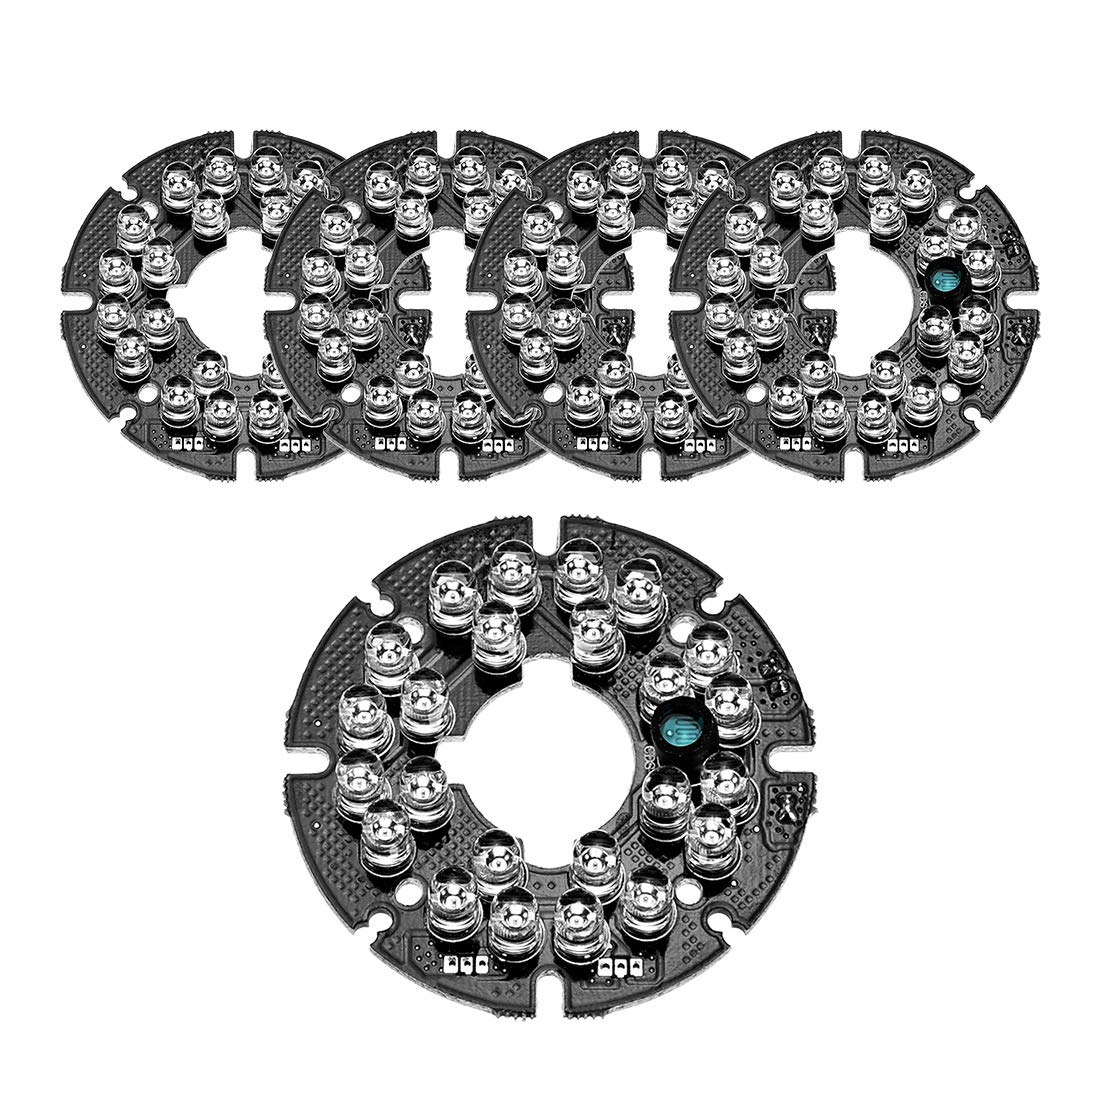 uxcell 24 LEDs 850nm IR Infrared Board 60 Degree Round Plate IR Illuminator Board Bulb for CCTV Security Camera 5pcs by uxcell